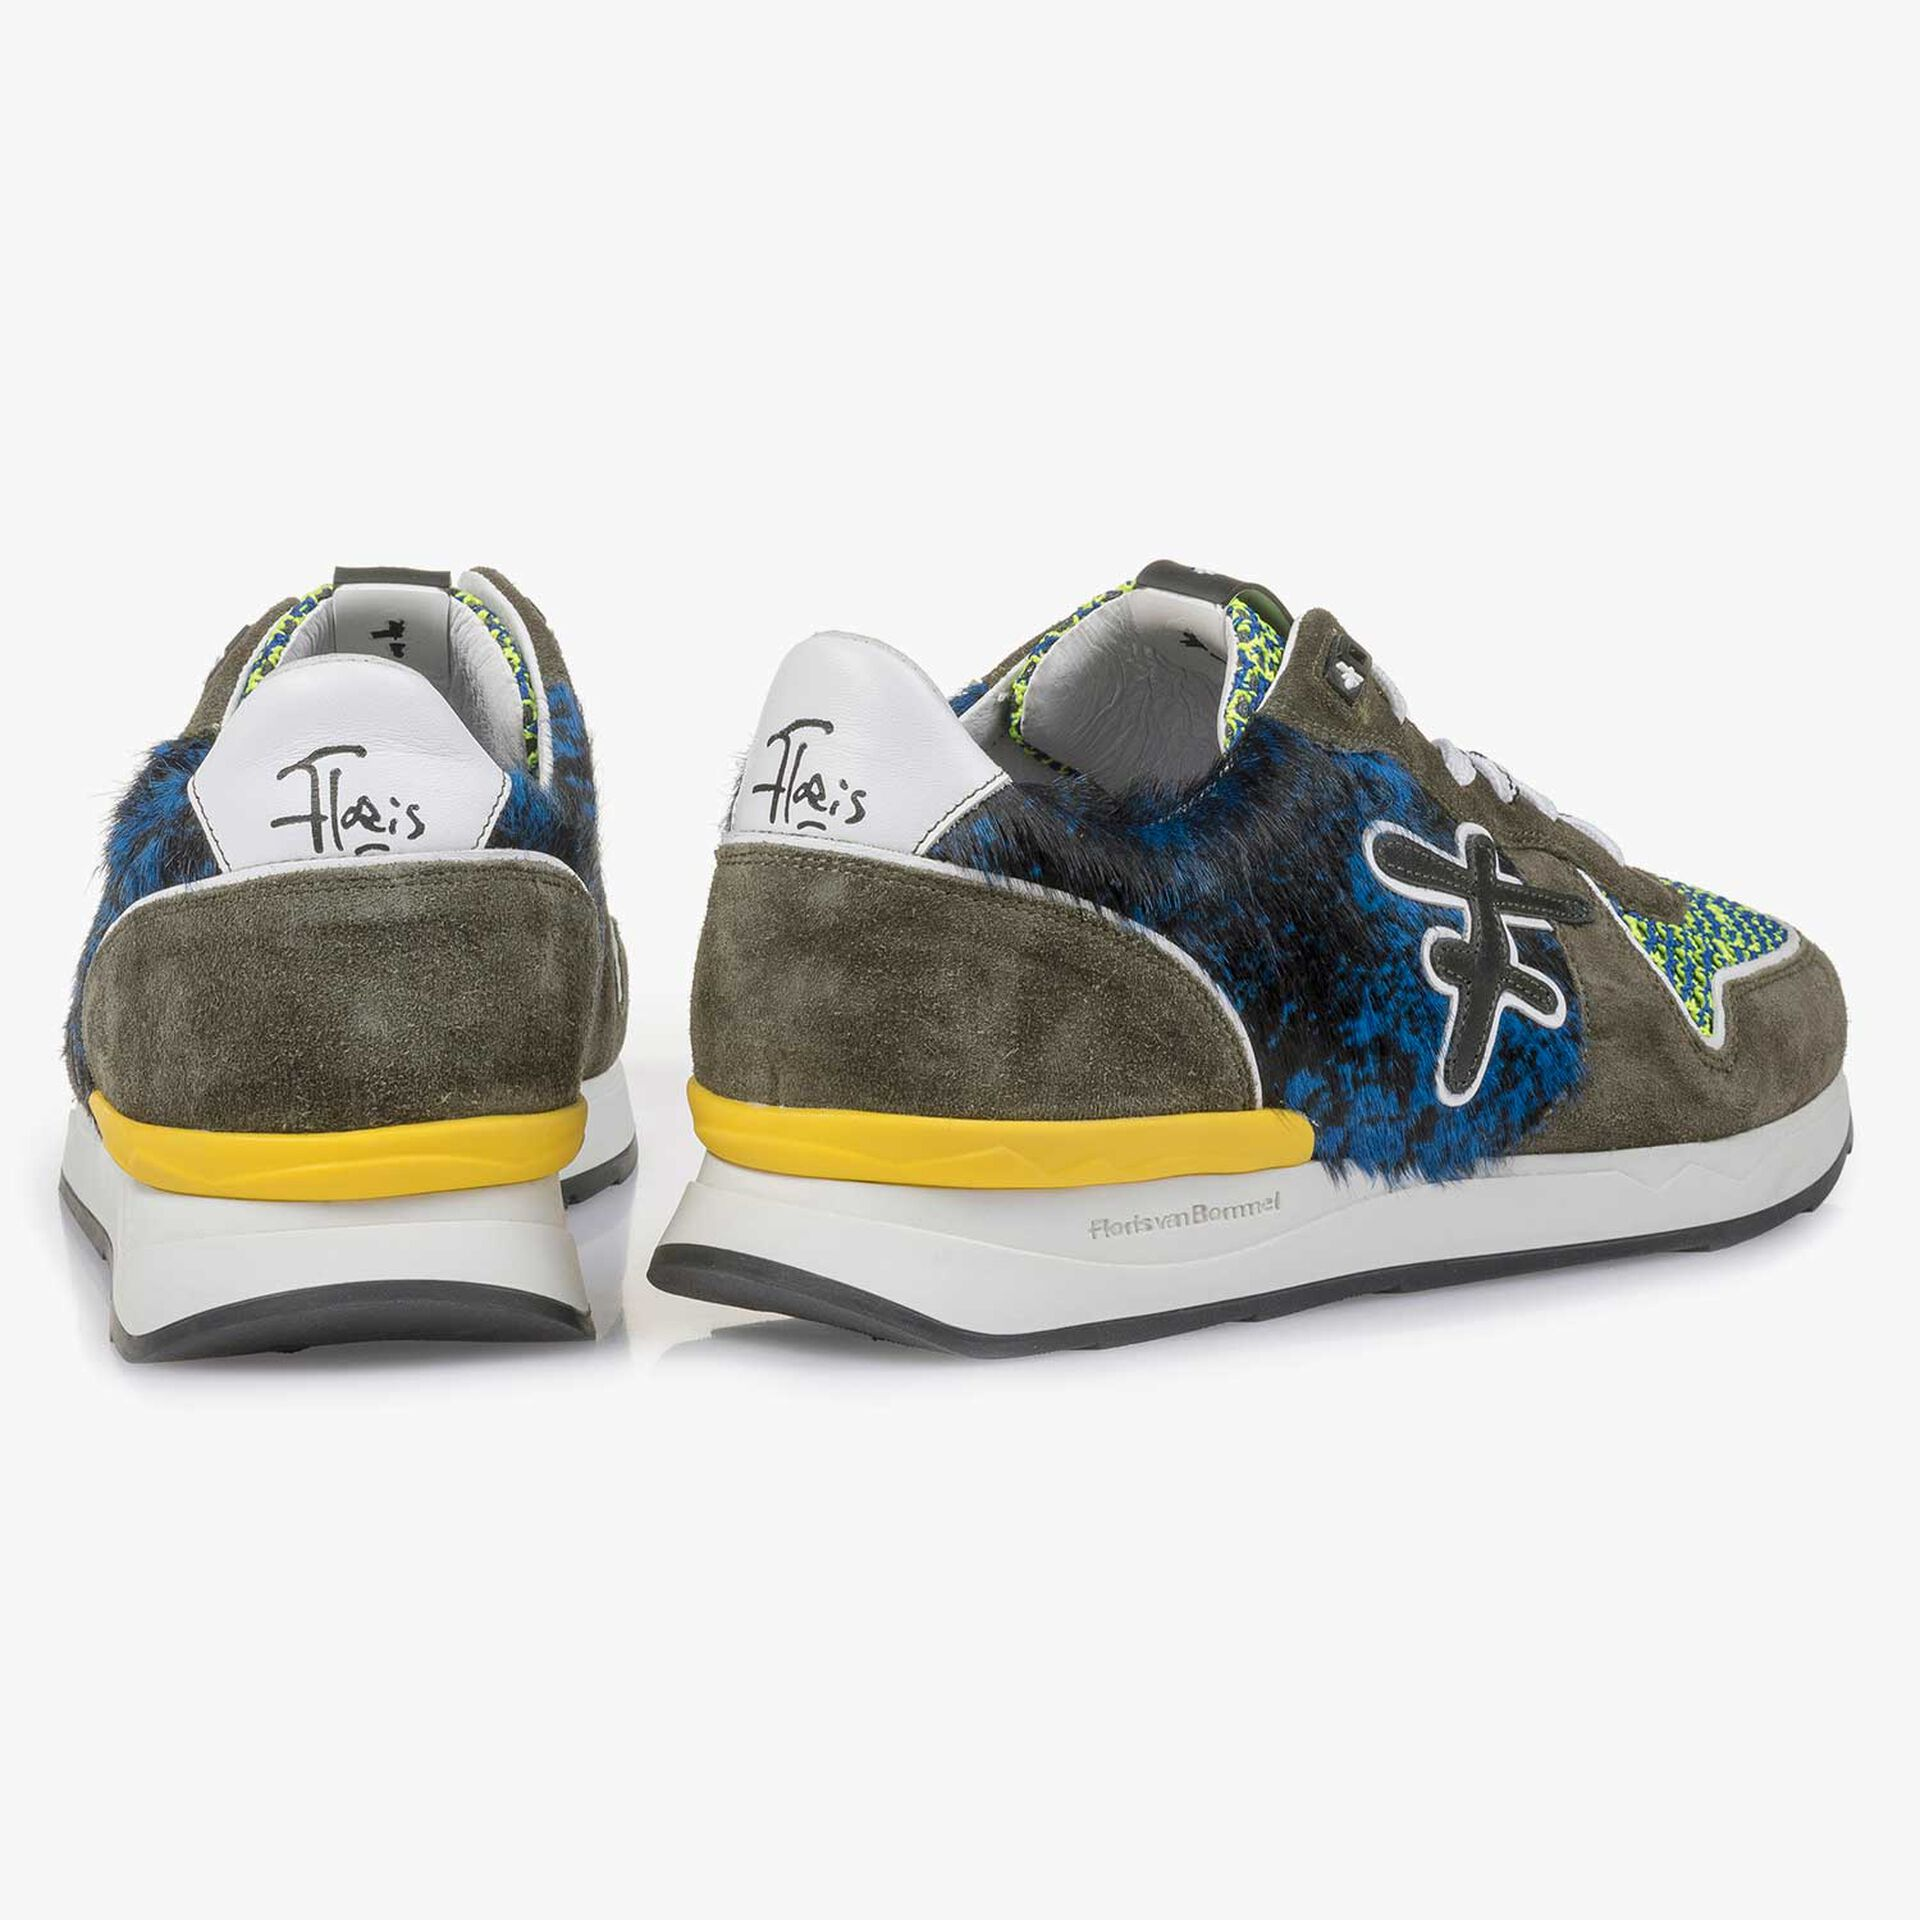 Green premium suede leather sneaker with color accents